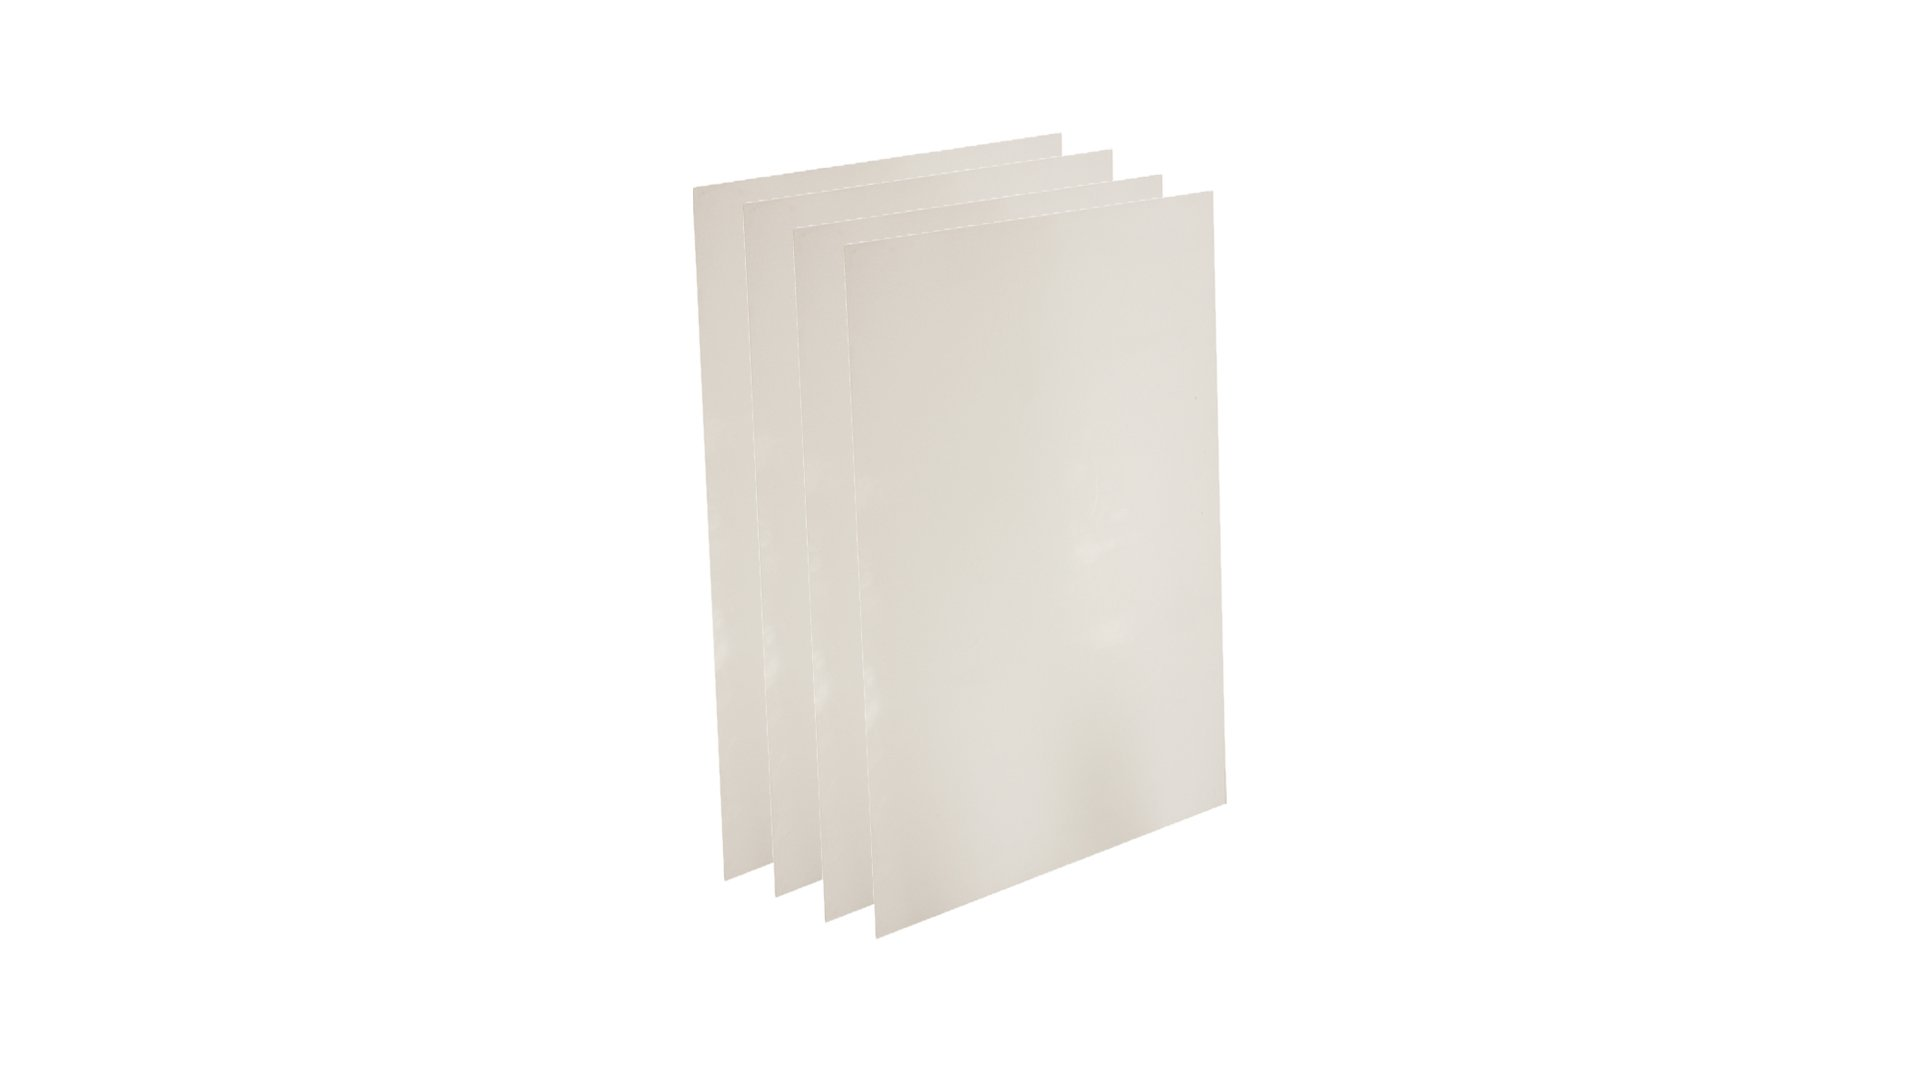 Sterling Seal 24SH.512x6x4 24SH Expanded PTFE Sheet, 0.5 mm Thick, 12'' x 6'', White (Pack of 4) by Sterling Seal & Supply, Inc. (STCC)